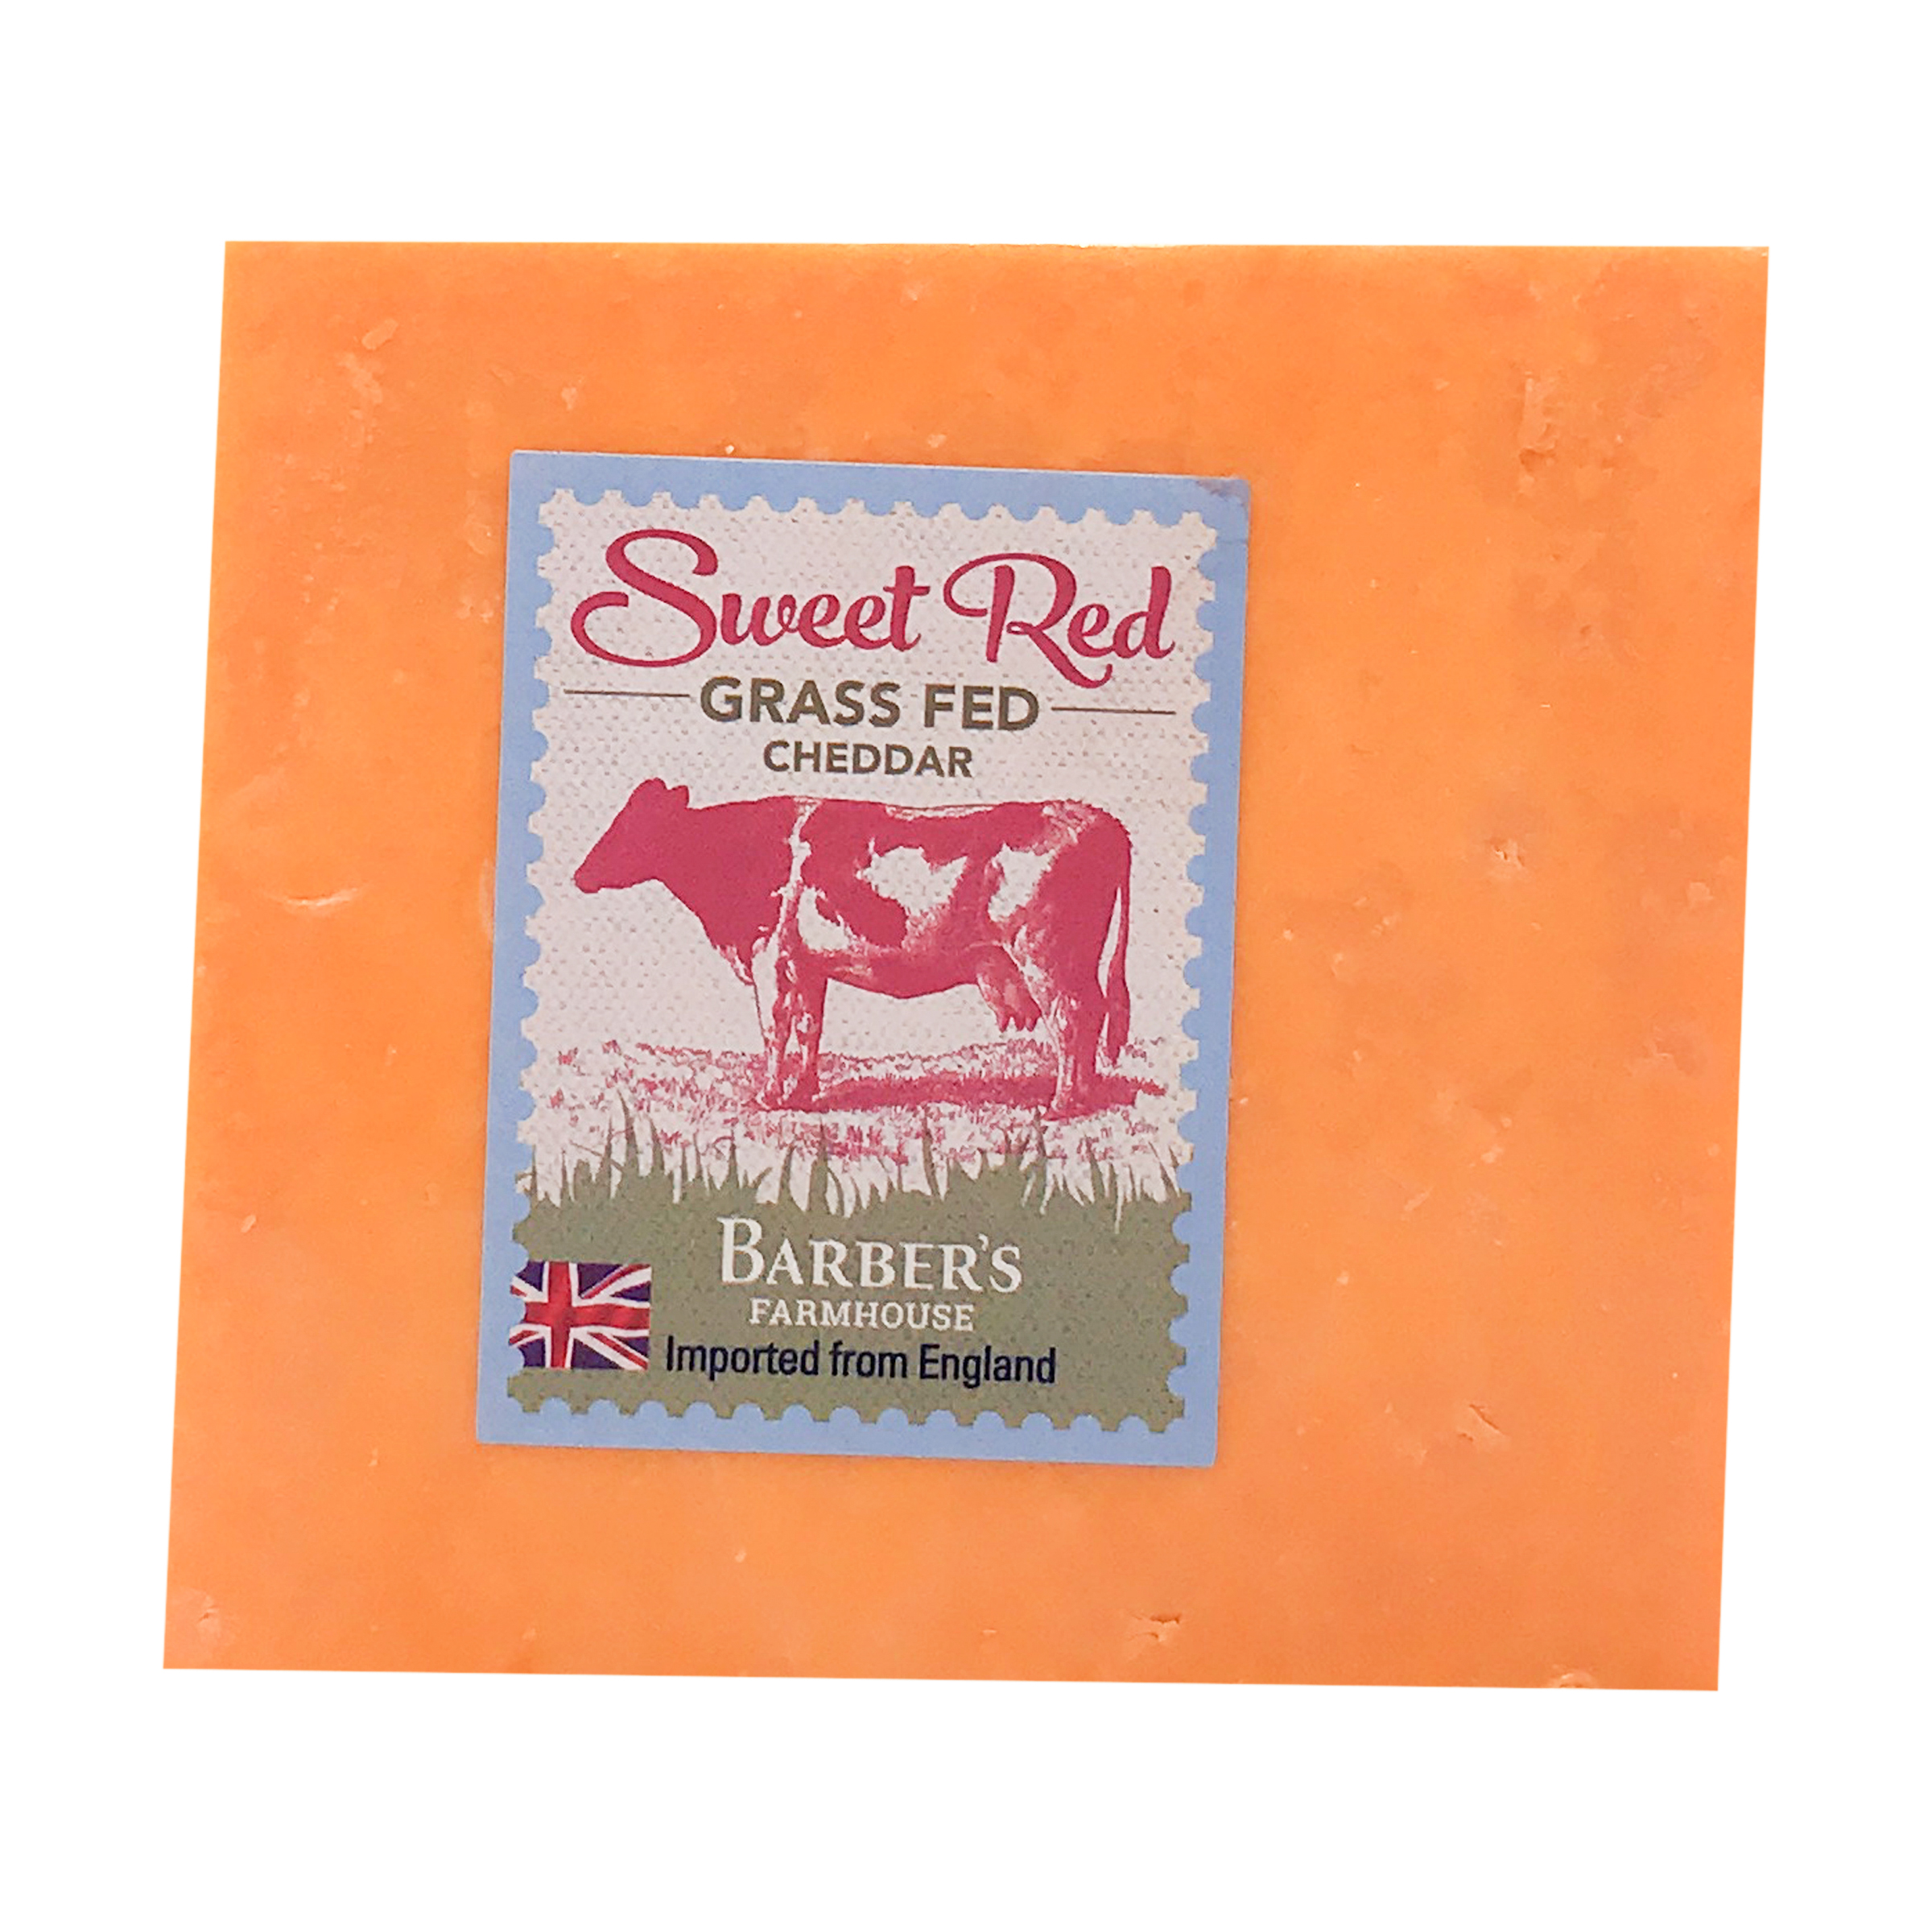 Sweet Red Grass Fed Cheddar, 0.58 lb, BARBERS | Whole Foods Market